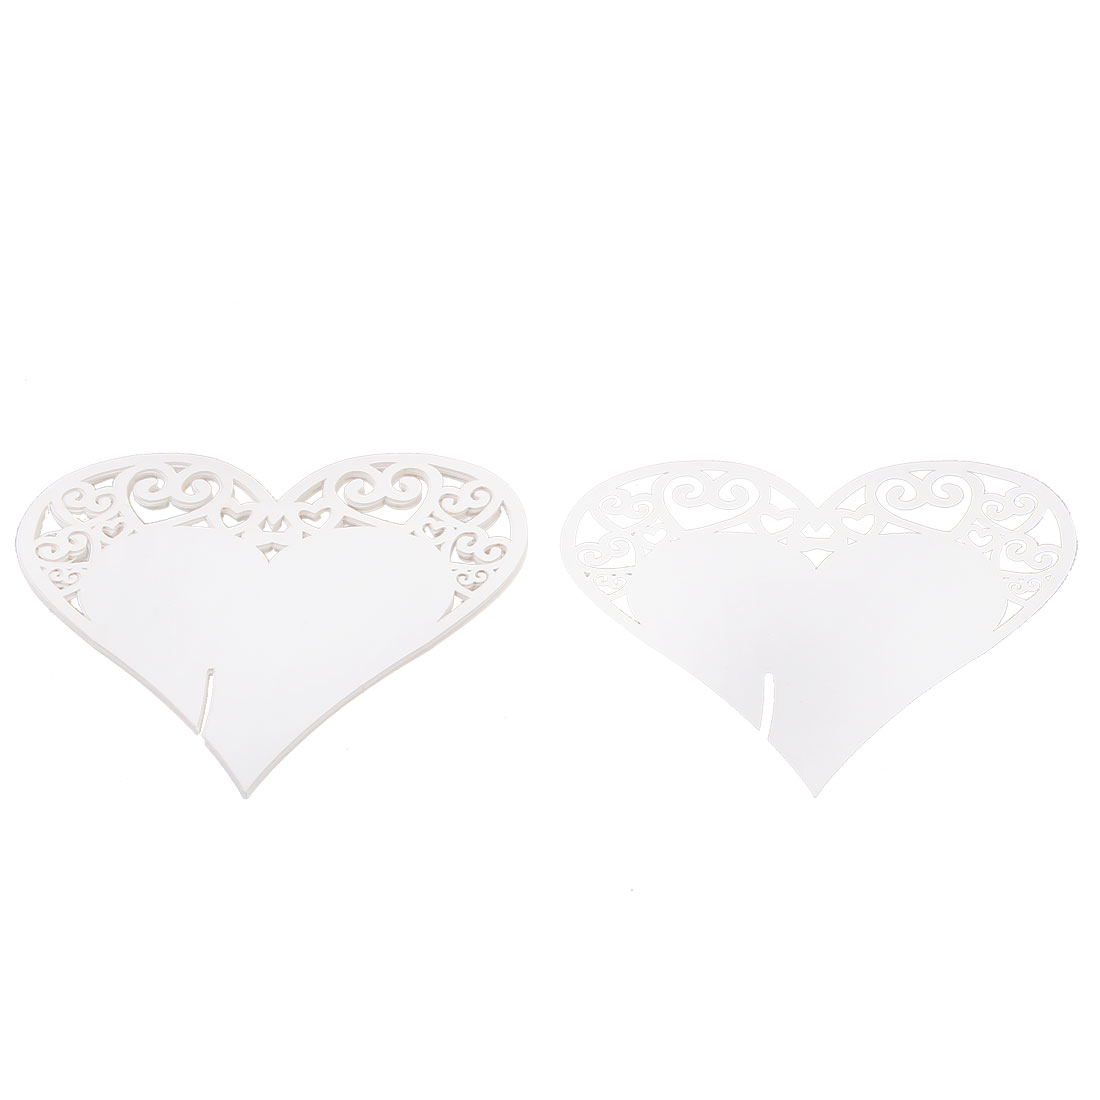 Party Wedding Decoration Heart Shaped Table Name Paper Wine Glass Card White 10 PCS